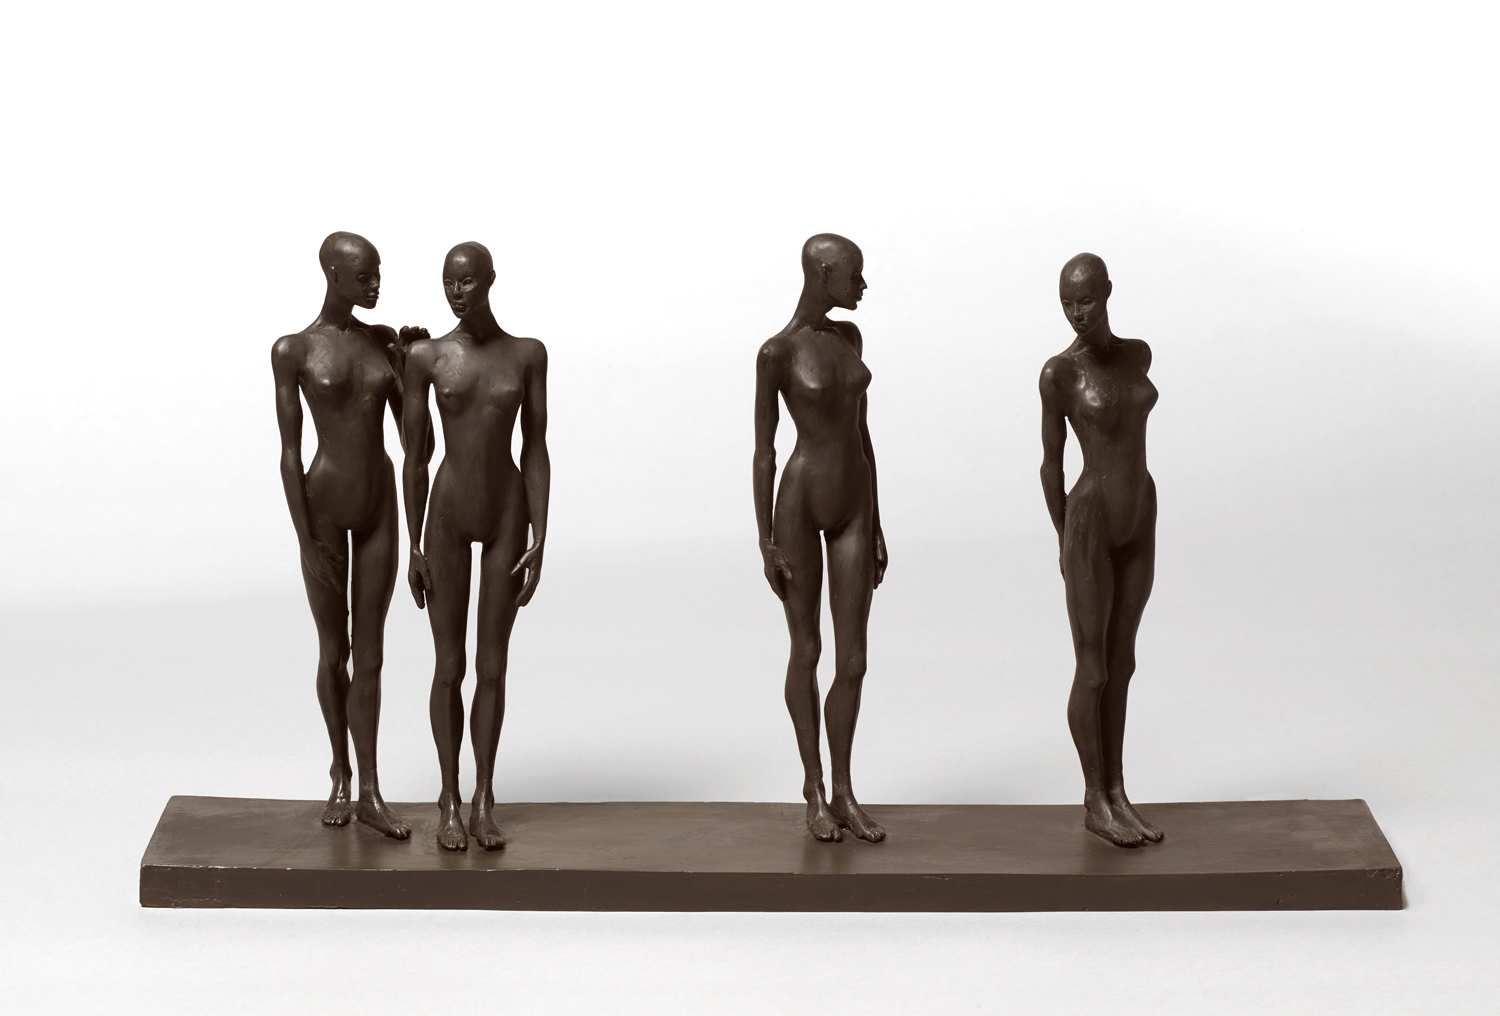 The Comment , 2019  bronze 11 1/2 x 21 3/4 x 4 inches; 29.2 x 55.2 x 10.2 centimeters  $16,000.00